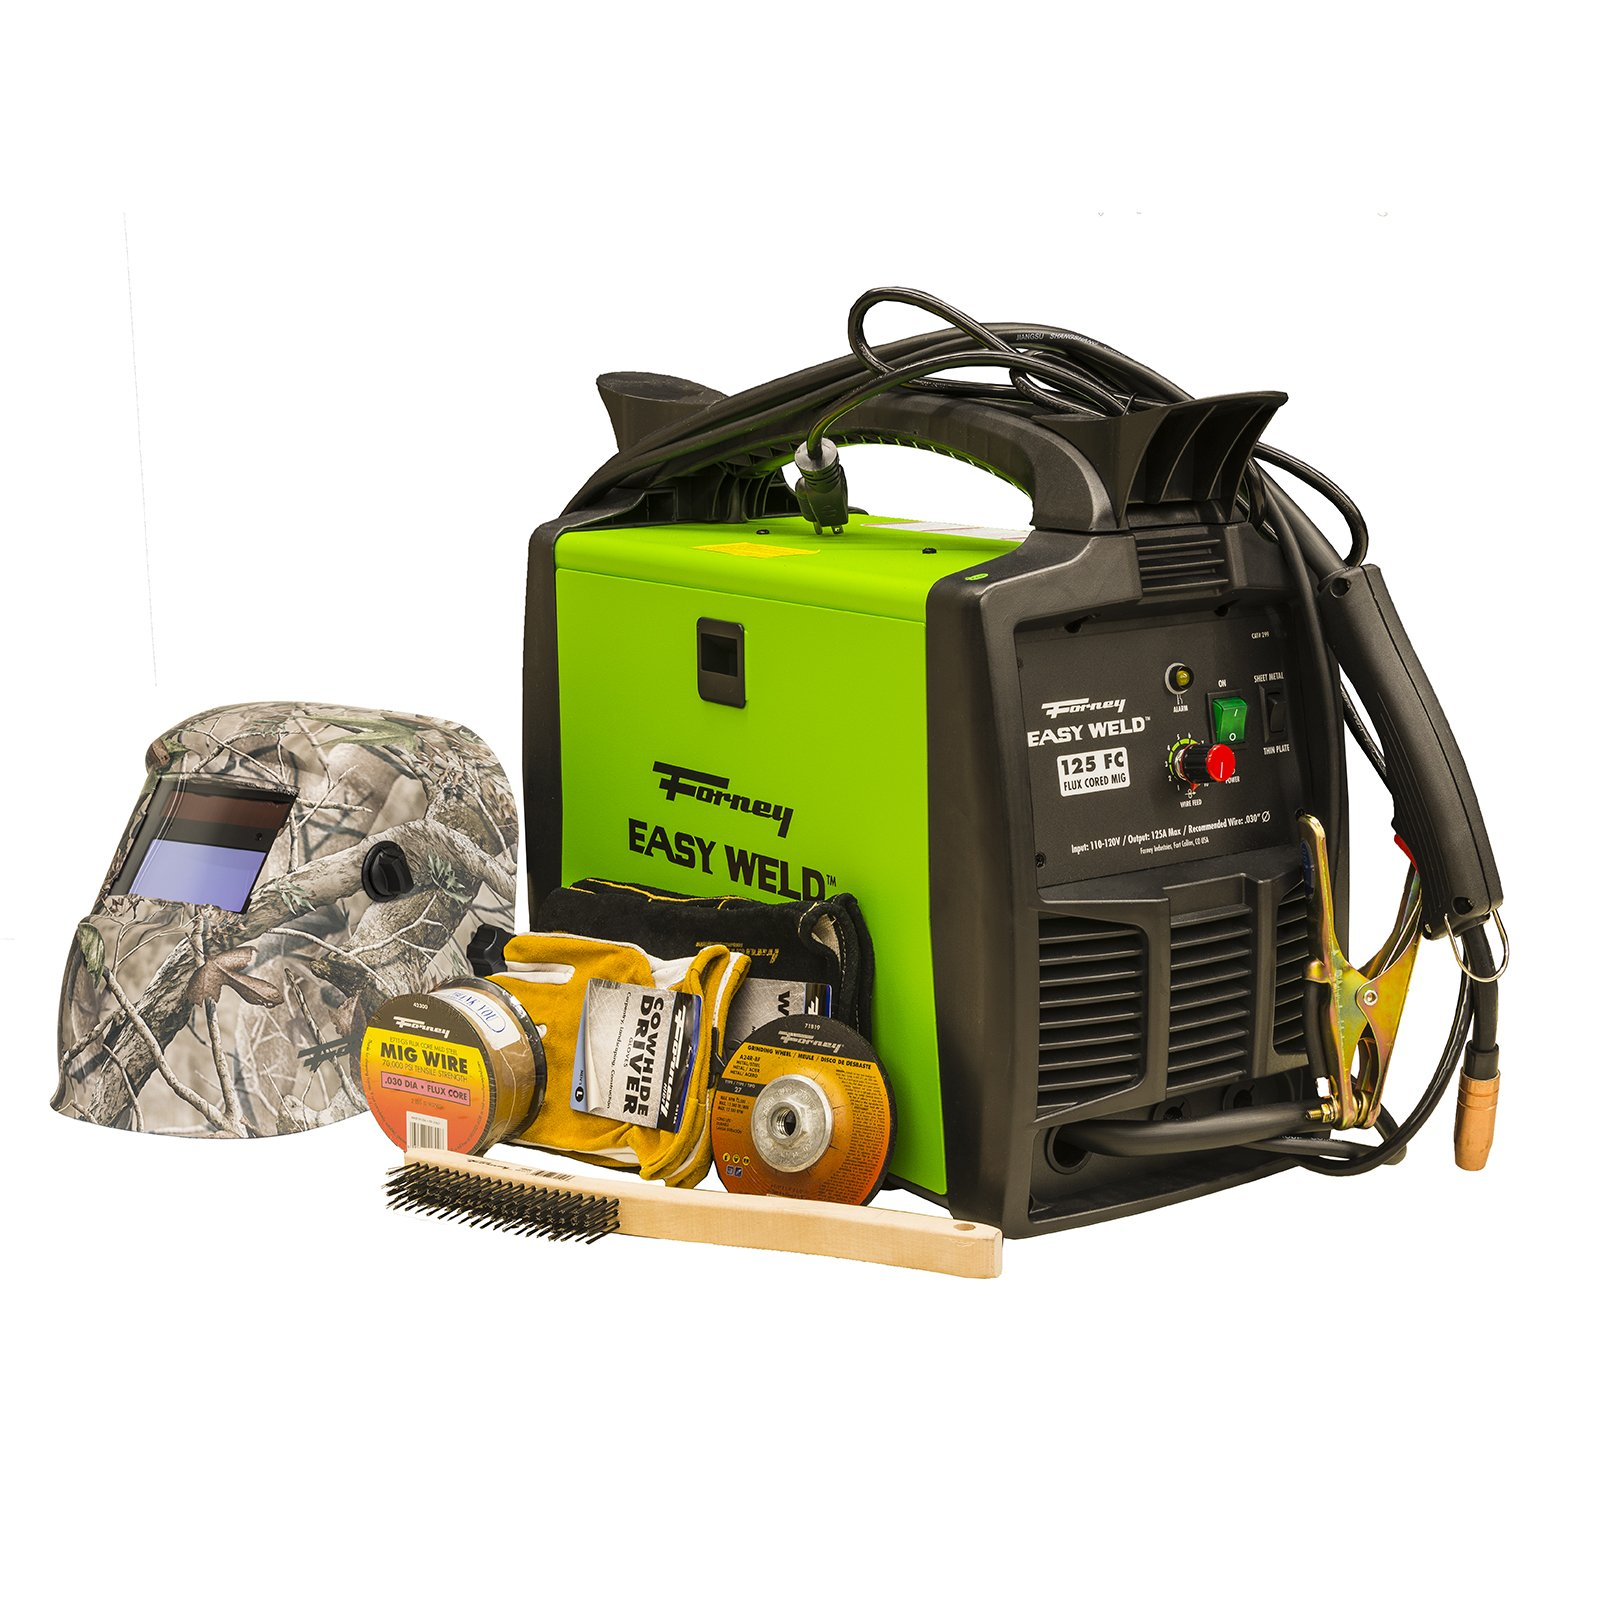 Best Rated In Mig Welding Equipment Helpful Customer Reviews Wiring Up A 220v Machine Forney Easy Weld 29901 125 Fc Welder Start Kit Product Image